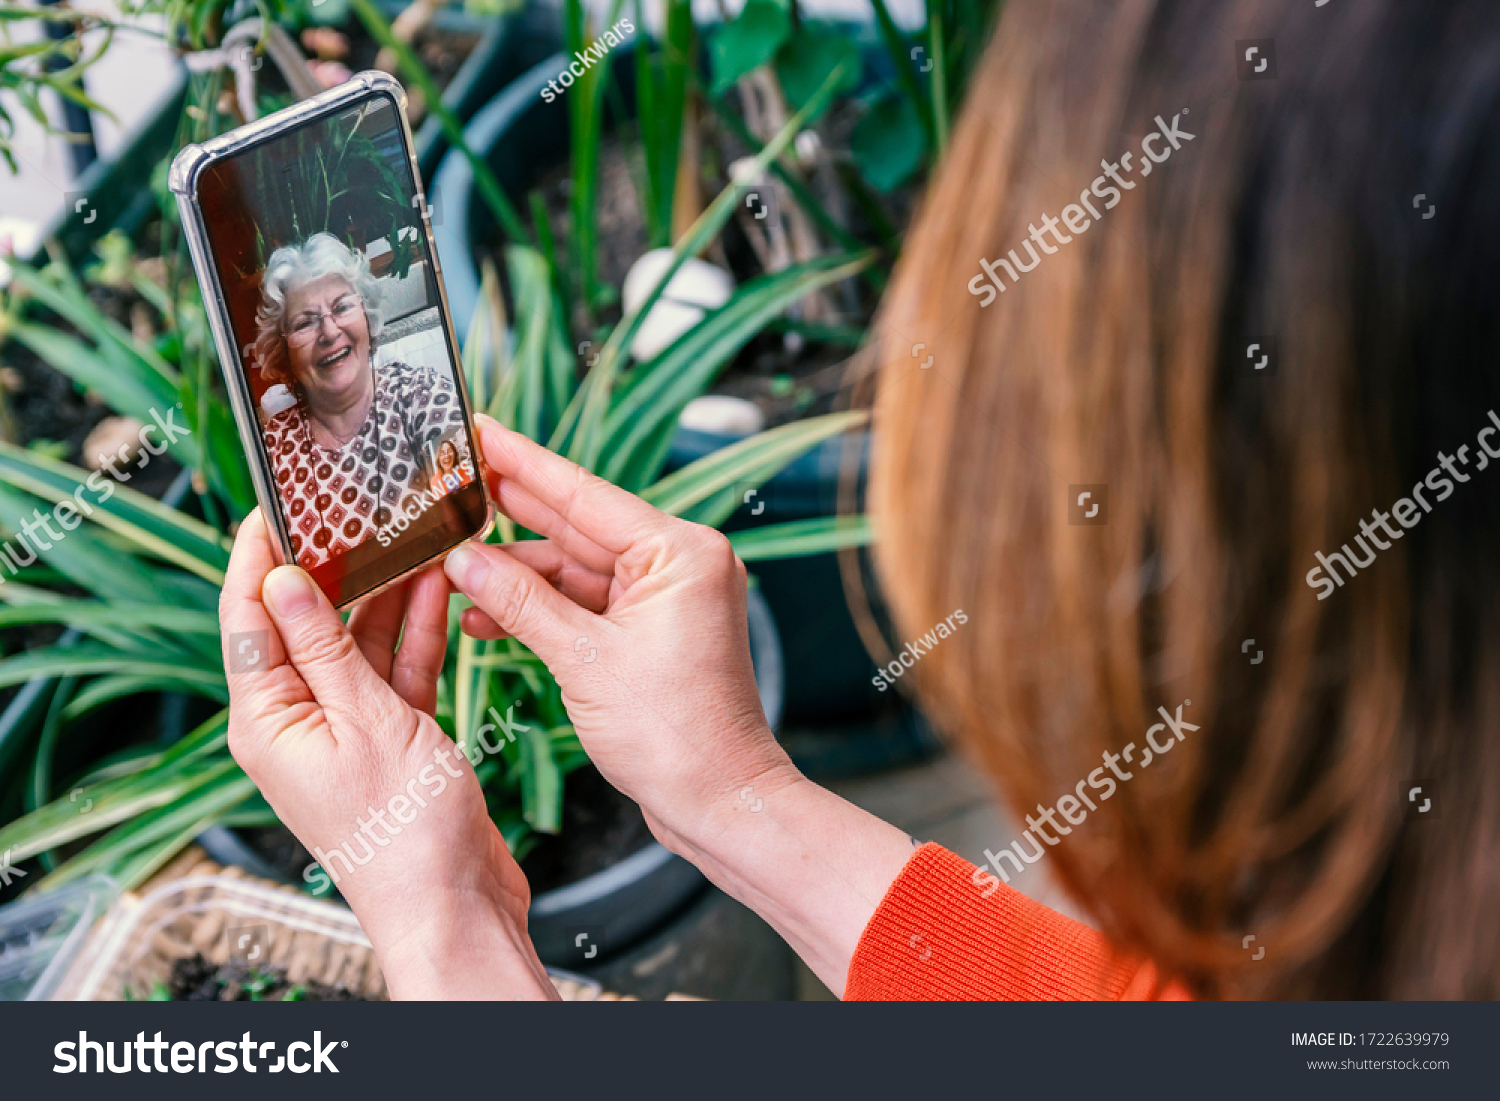 Mother's day lockdown concept: Mother and child laughing during online video call, celebrating this special day. Woman with white hair and glasses smiles into camera. Green leaves in background #1722639979